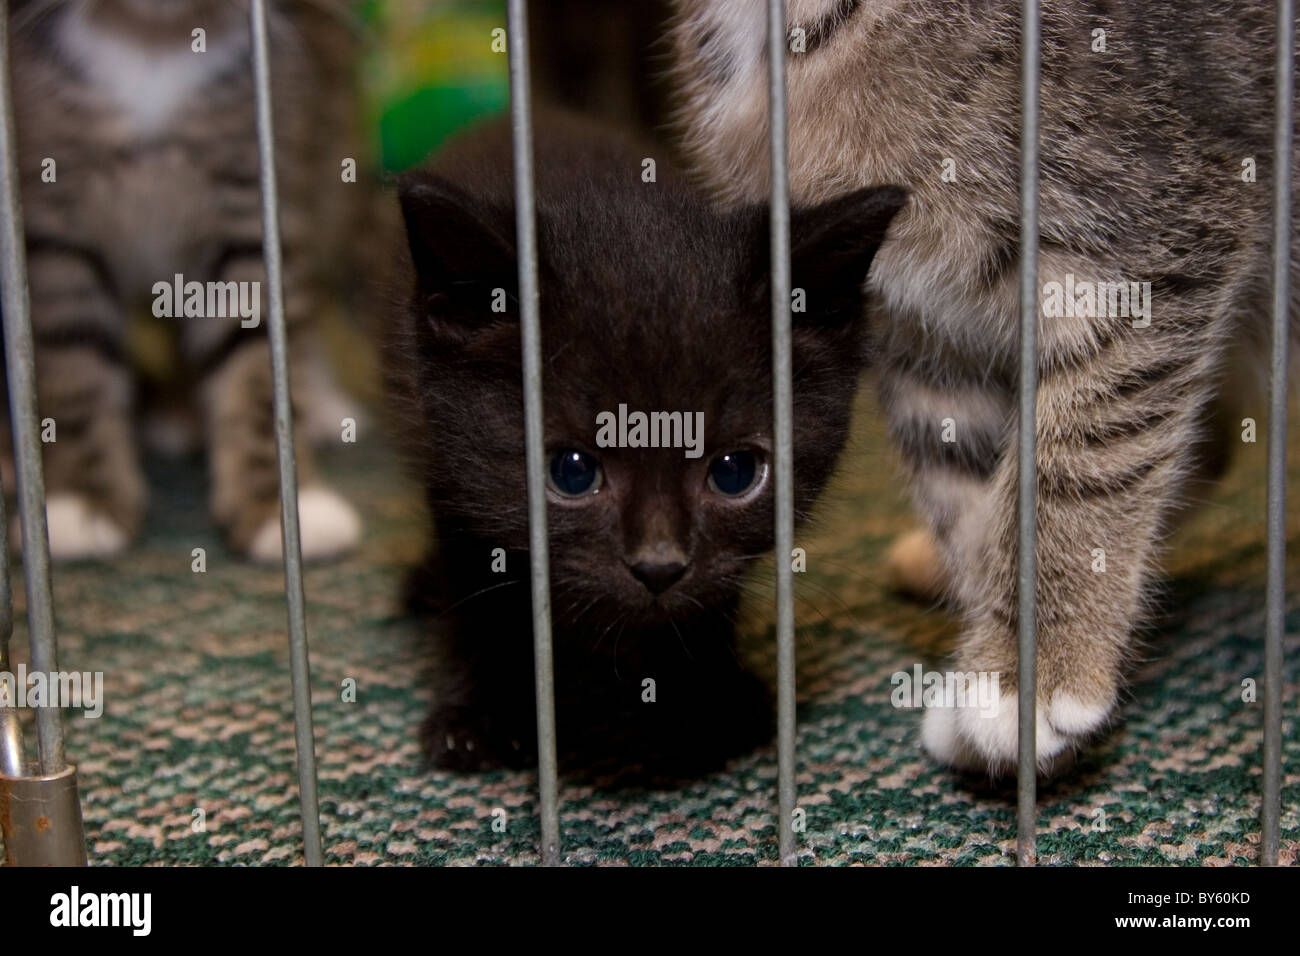 Young homeless black kitten in animal shelter with other cats - Stock Image